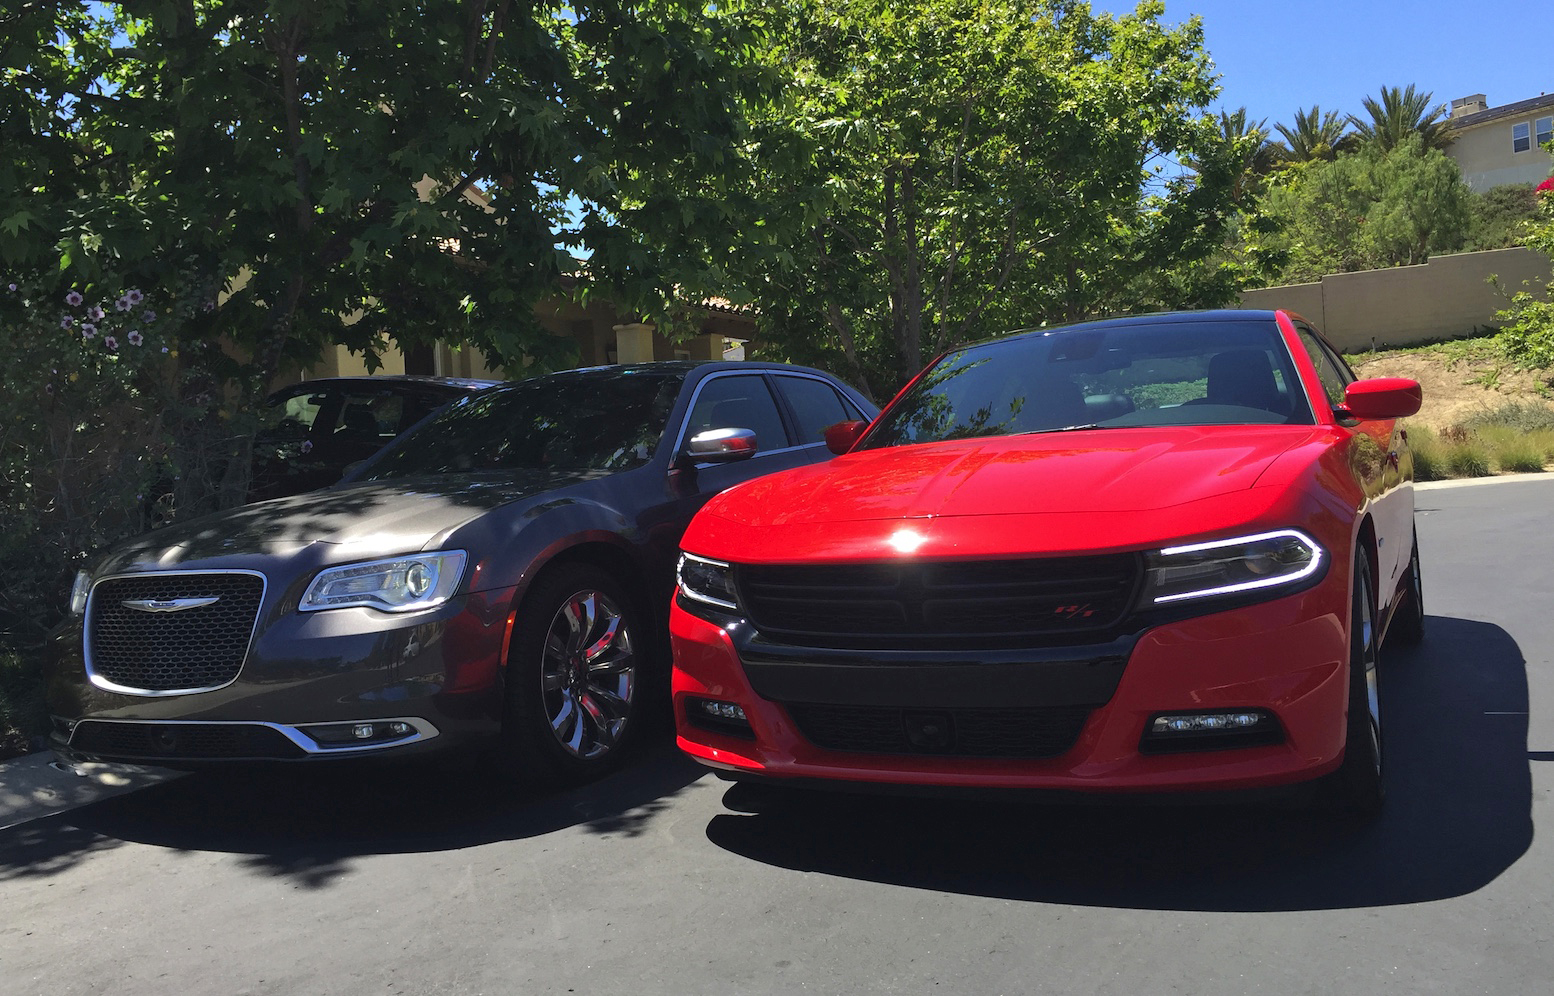 CAR WARS Chrysler 300c vs Dodge Charger Which Car Has The